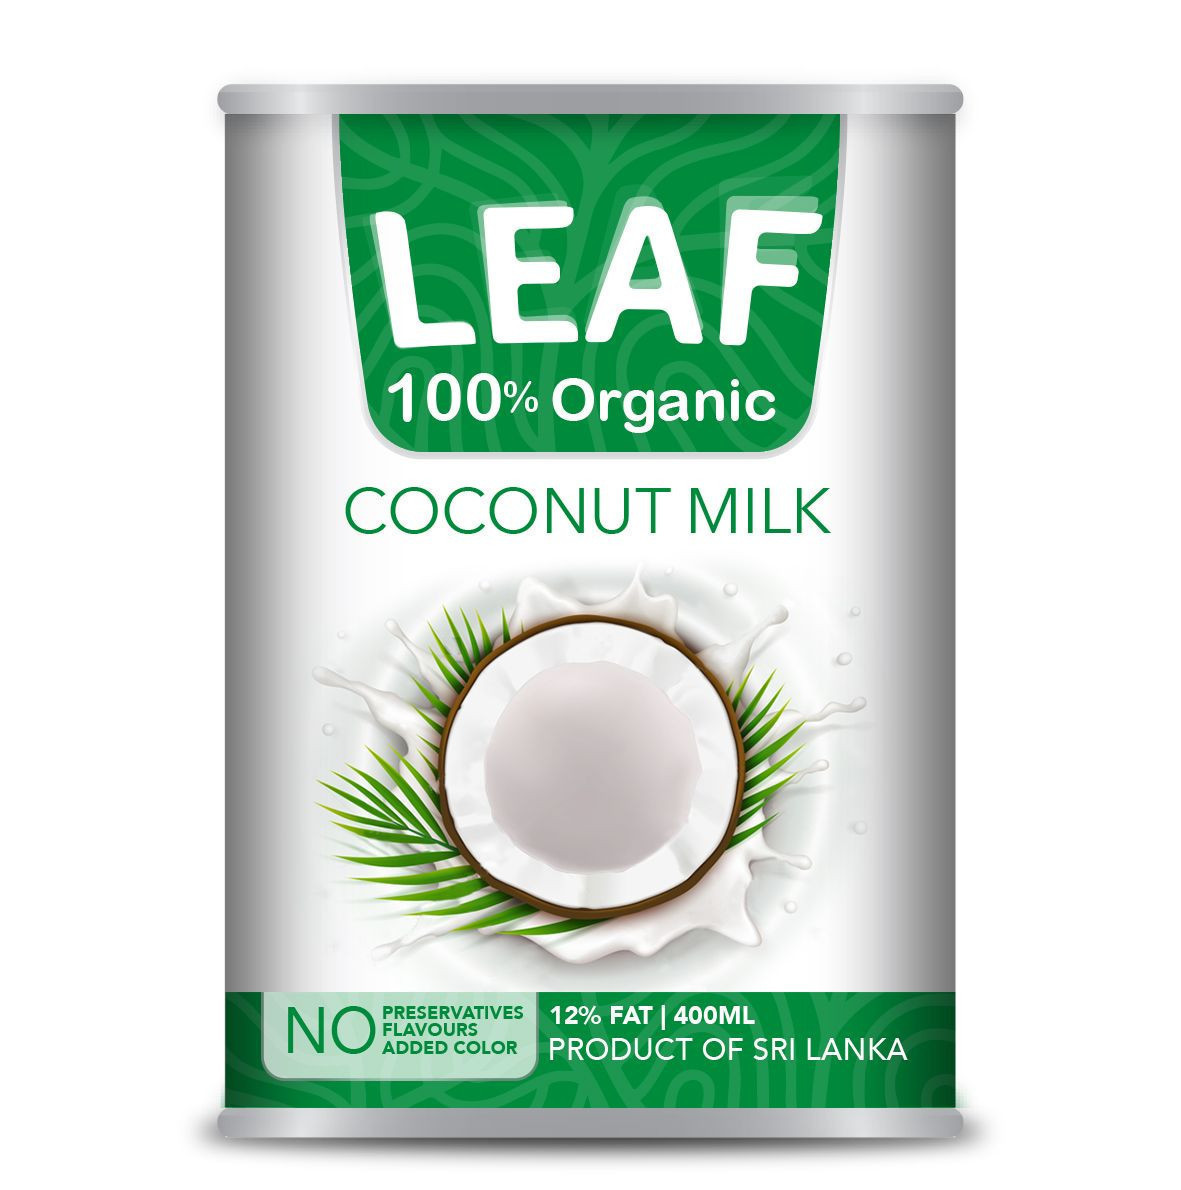 Leaf Organic Coconut Milk